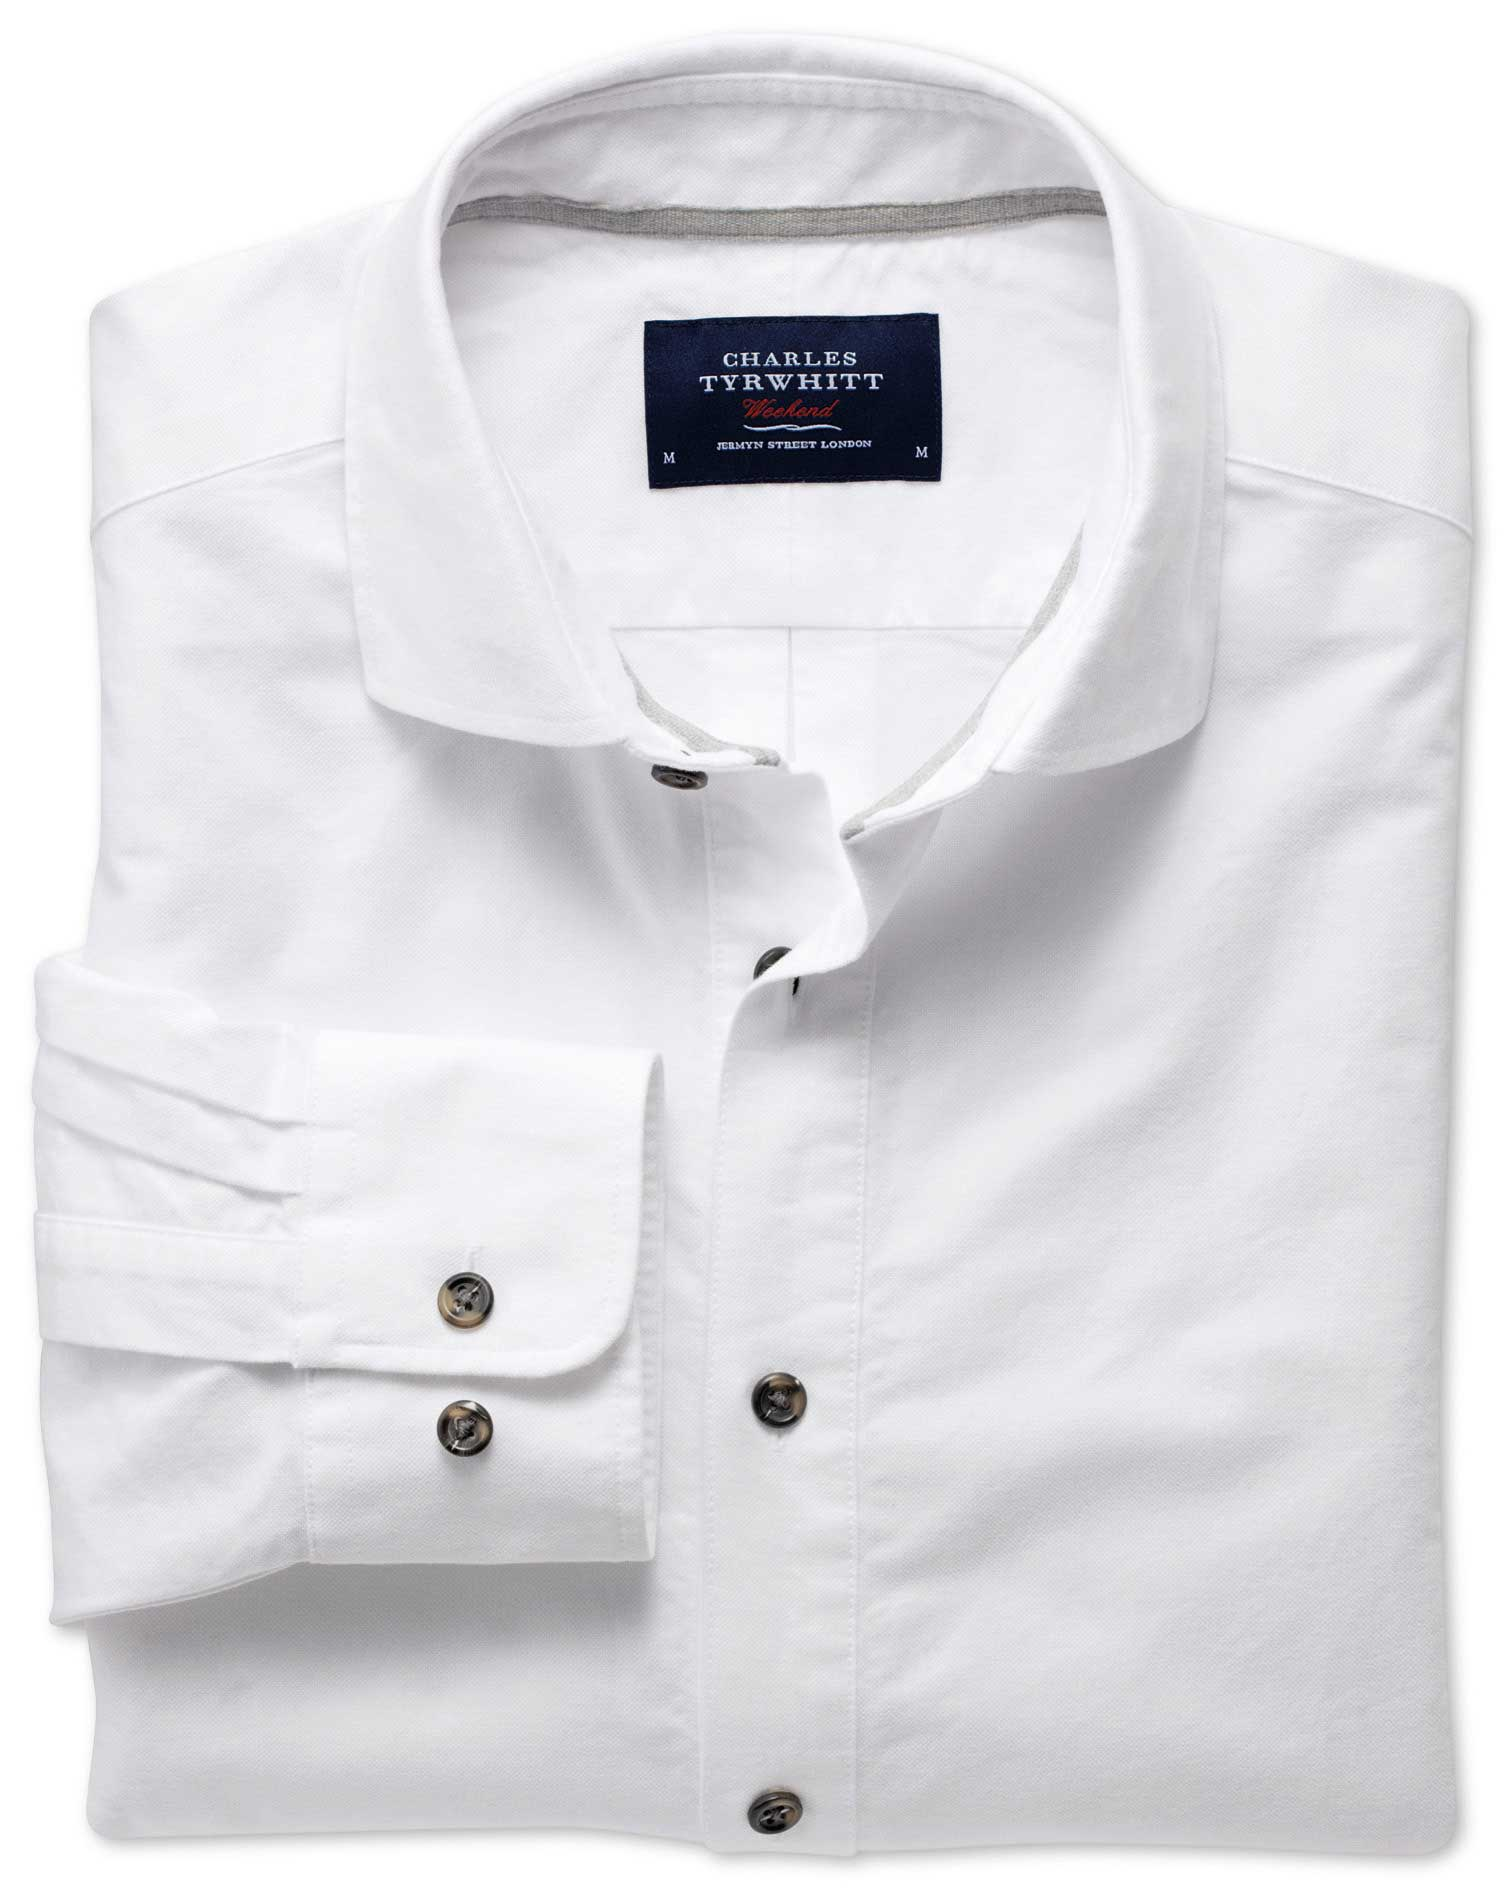 Slim Fit Cutaway Collar Popover White Cotton Shirt Single Cuff Size XL by Charles Tyrwhitt